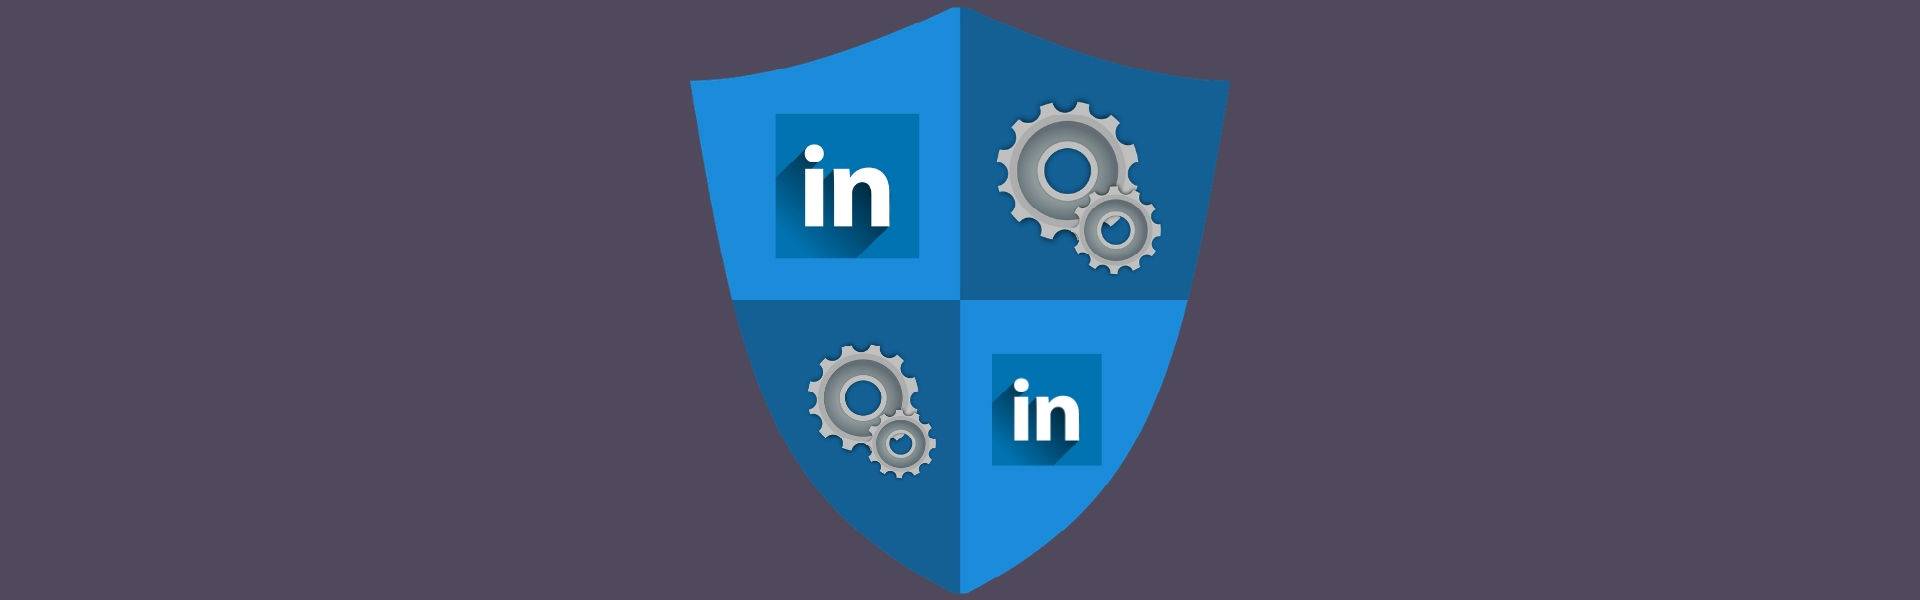 How to protect your business from Competitors, LinkedIn tips